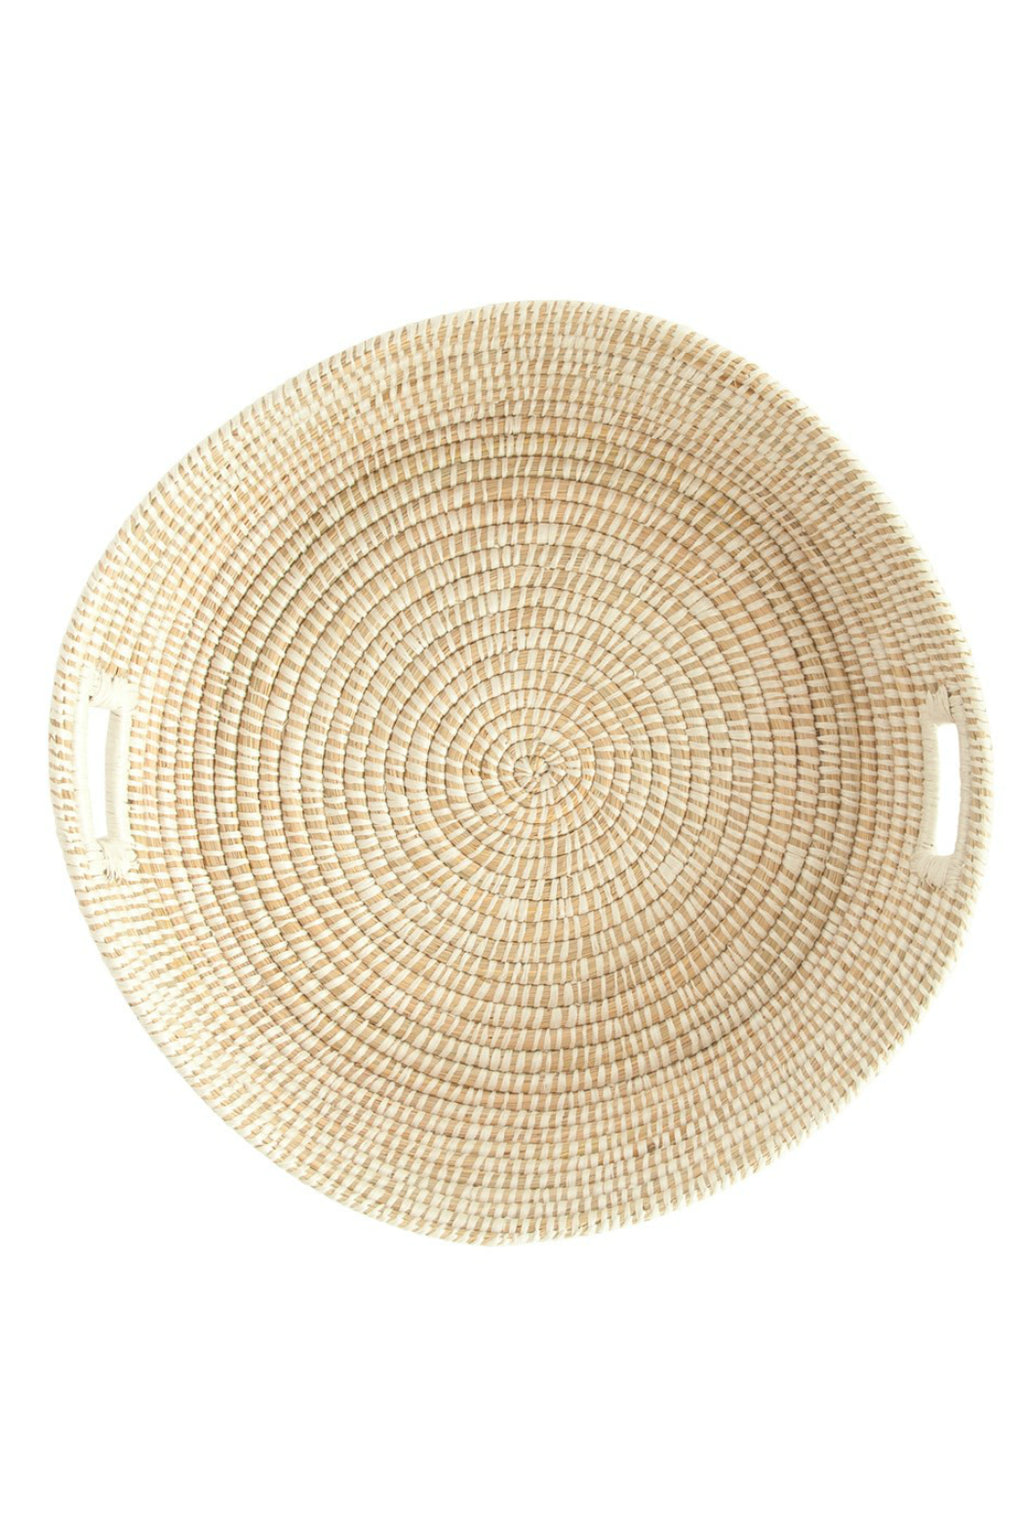 Creative Co-op Round Hand-Woven Handled Grass Basket Tray